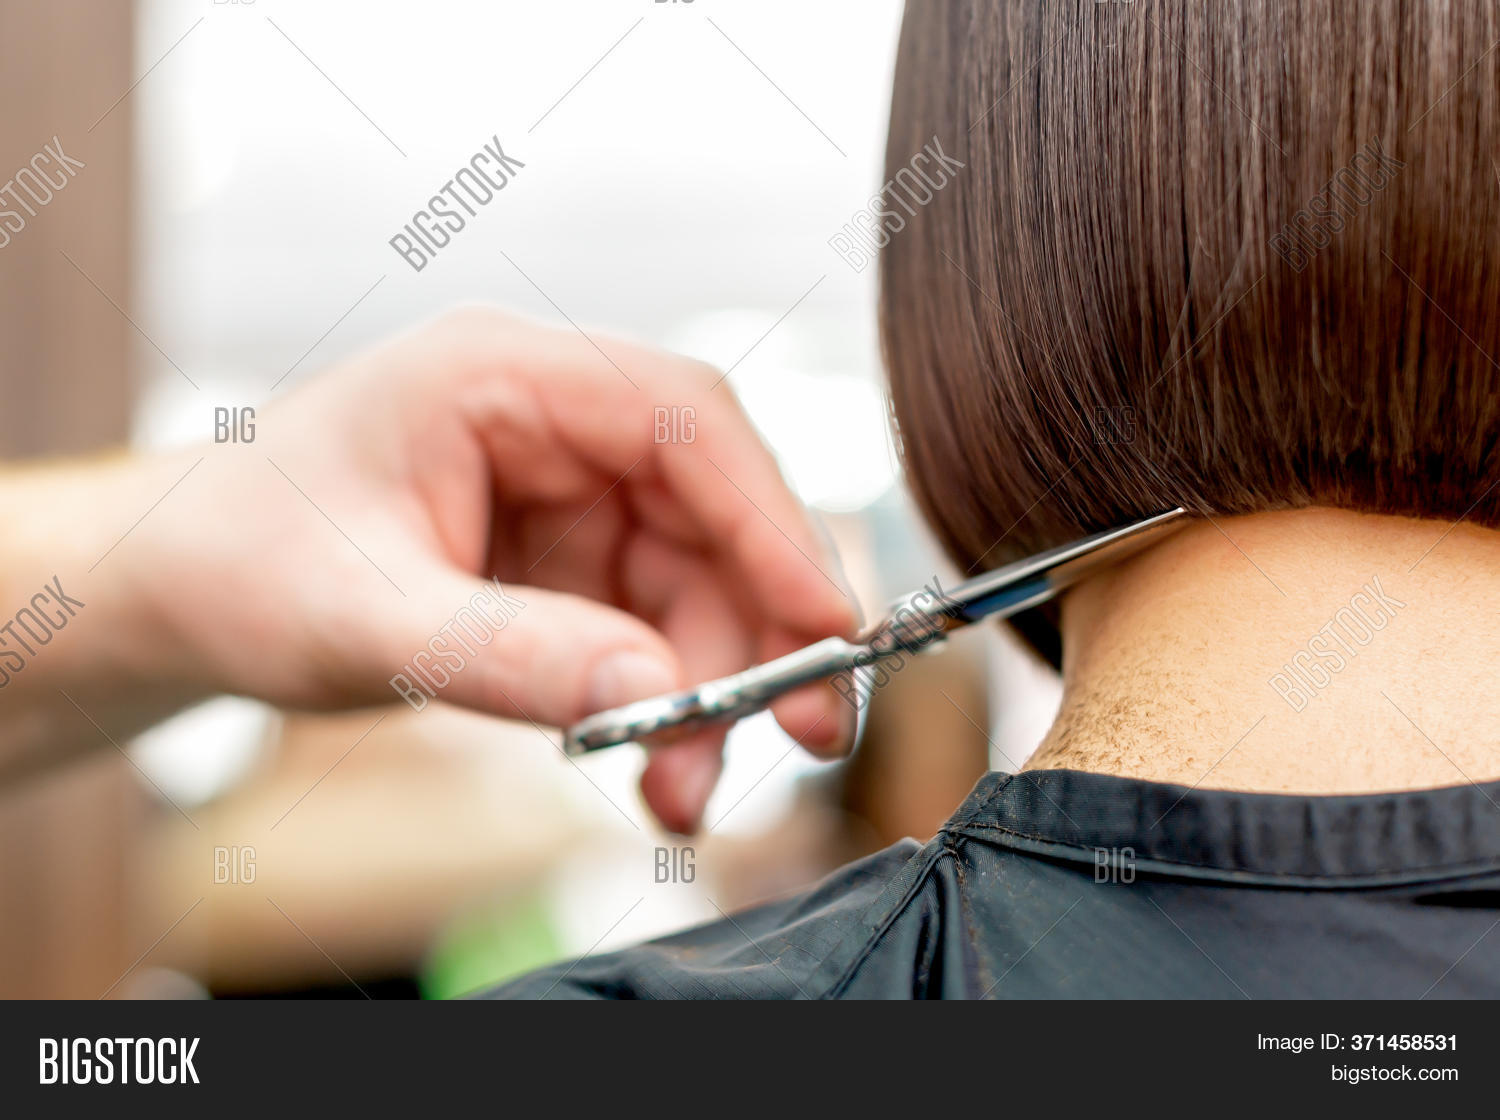 Back View Hairdresser Image Photo Free Trial Bigstock